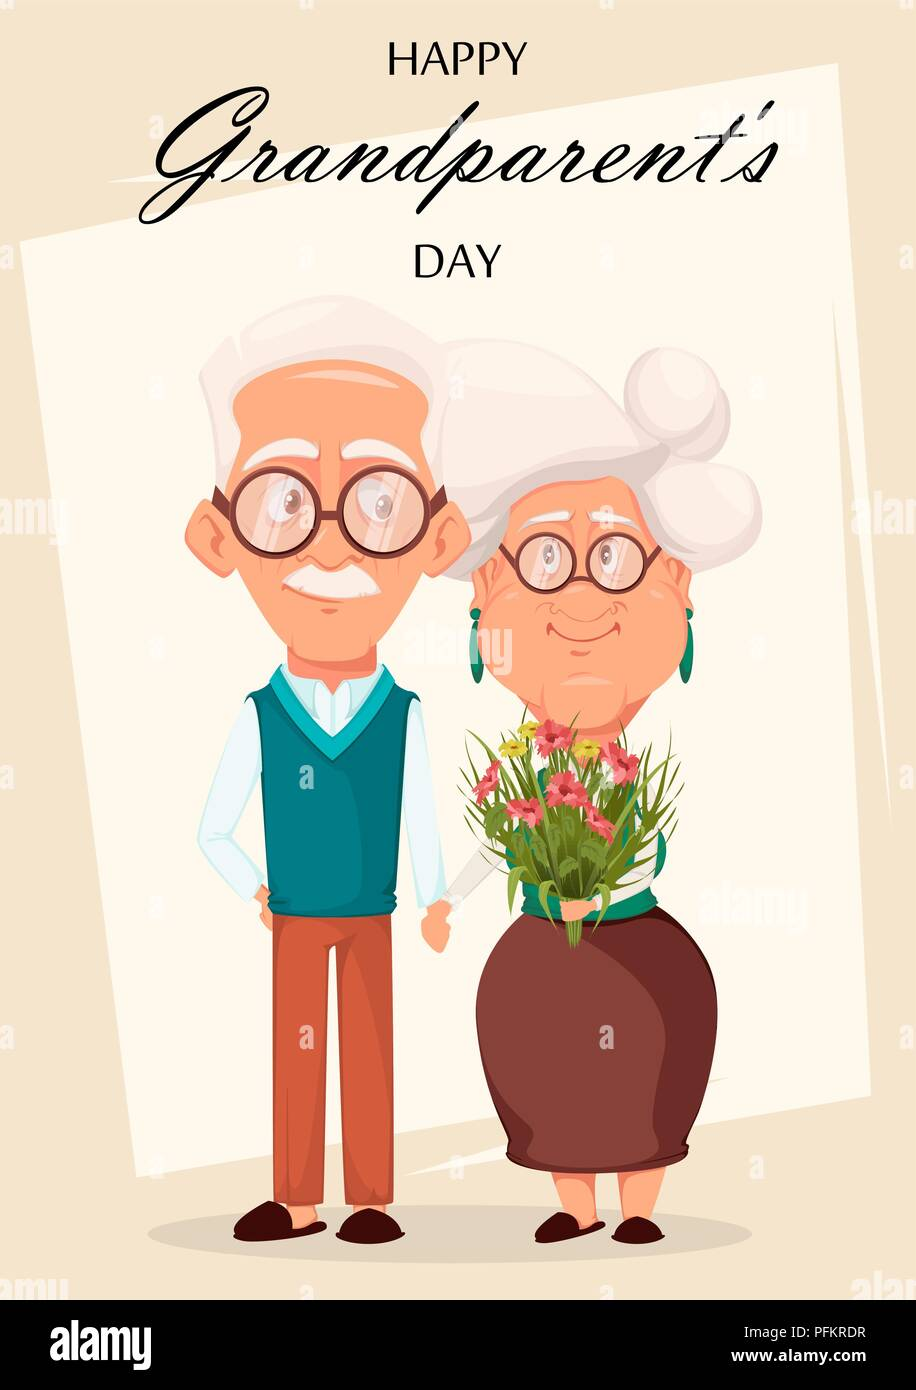 Grandparents Day Greeting Card Grandmother And Grandfather Together